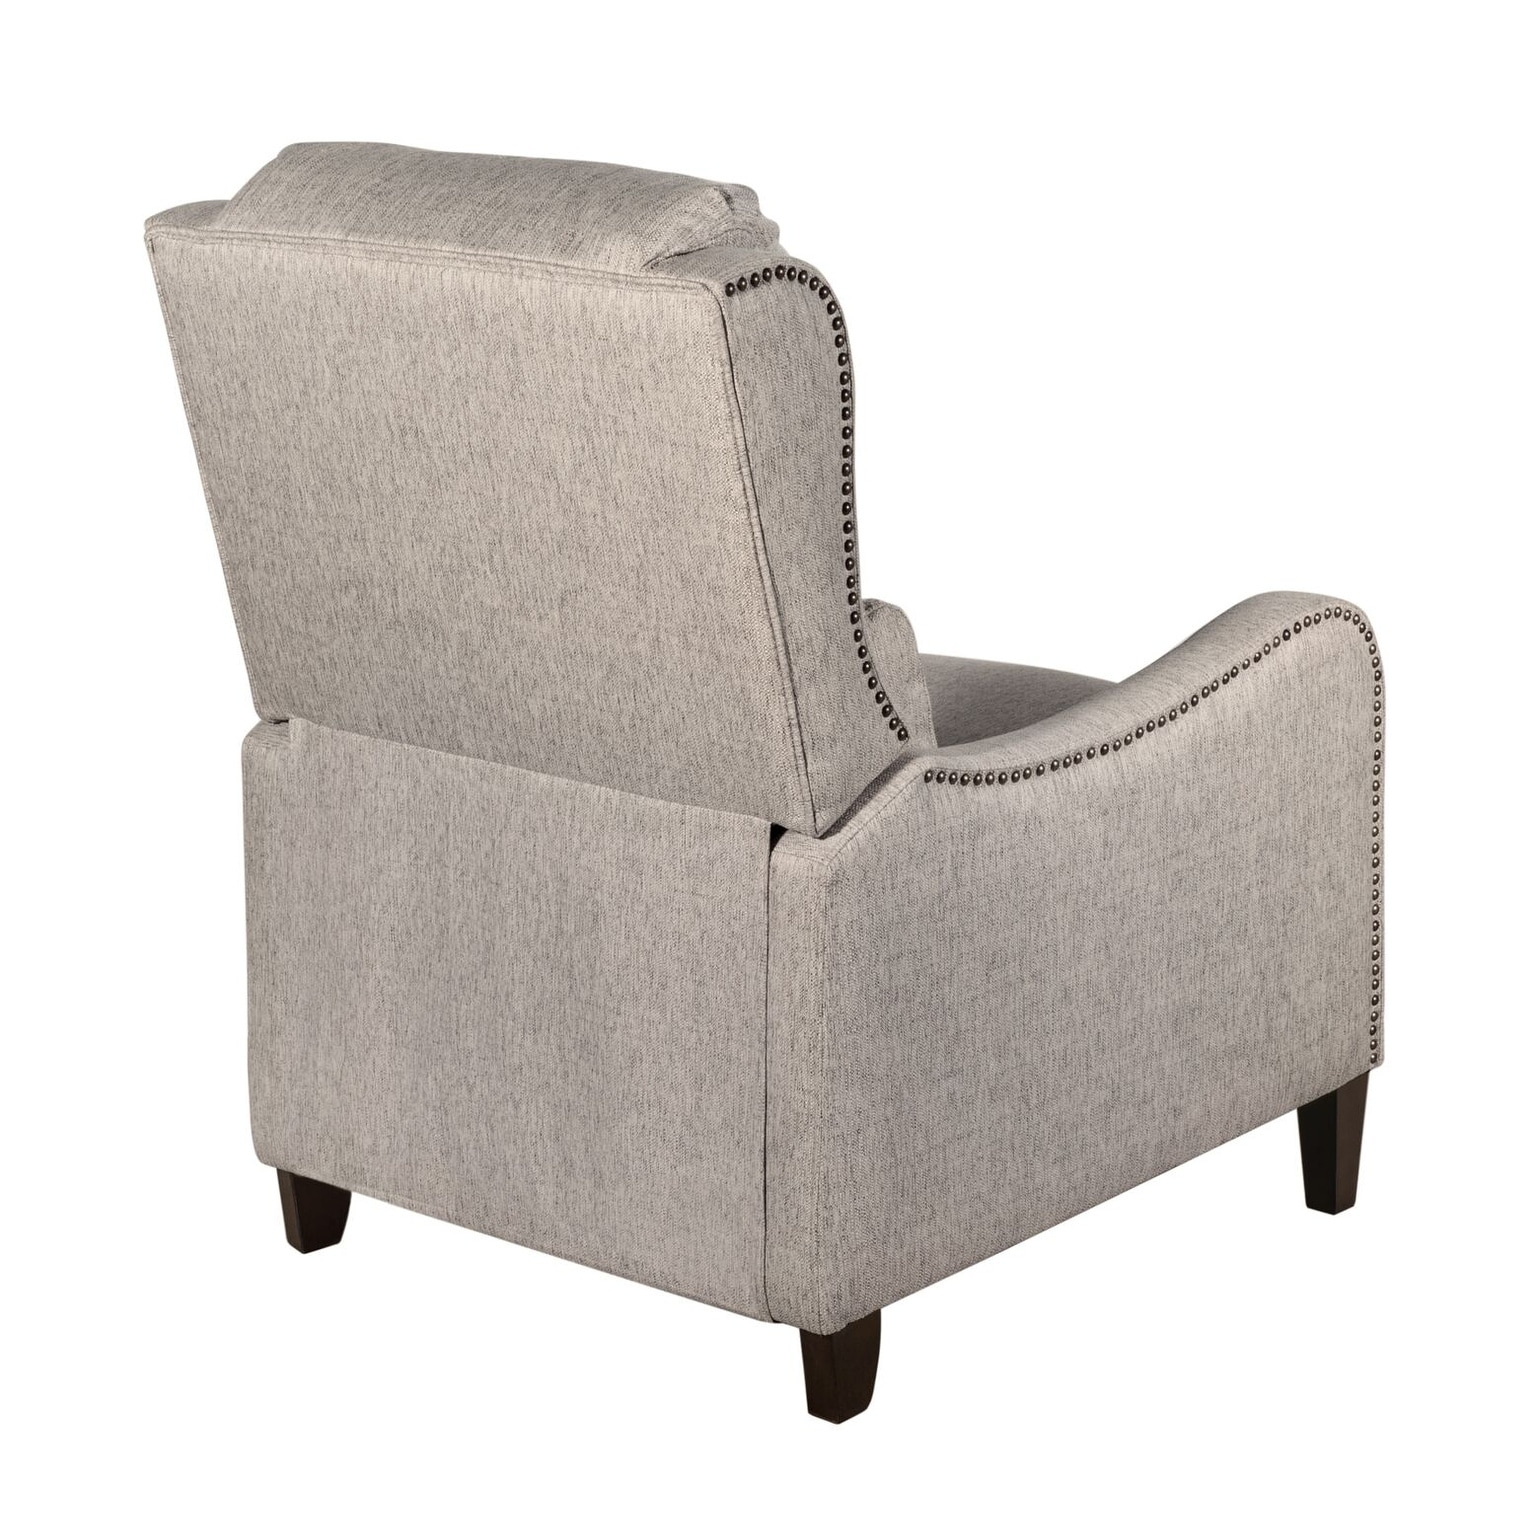 Tommy Hilfiger Eddington Modern Recliner Chair With Nailheads